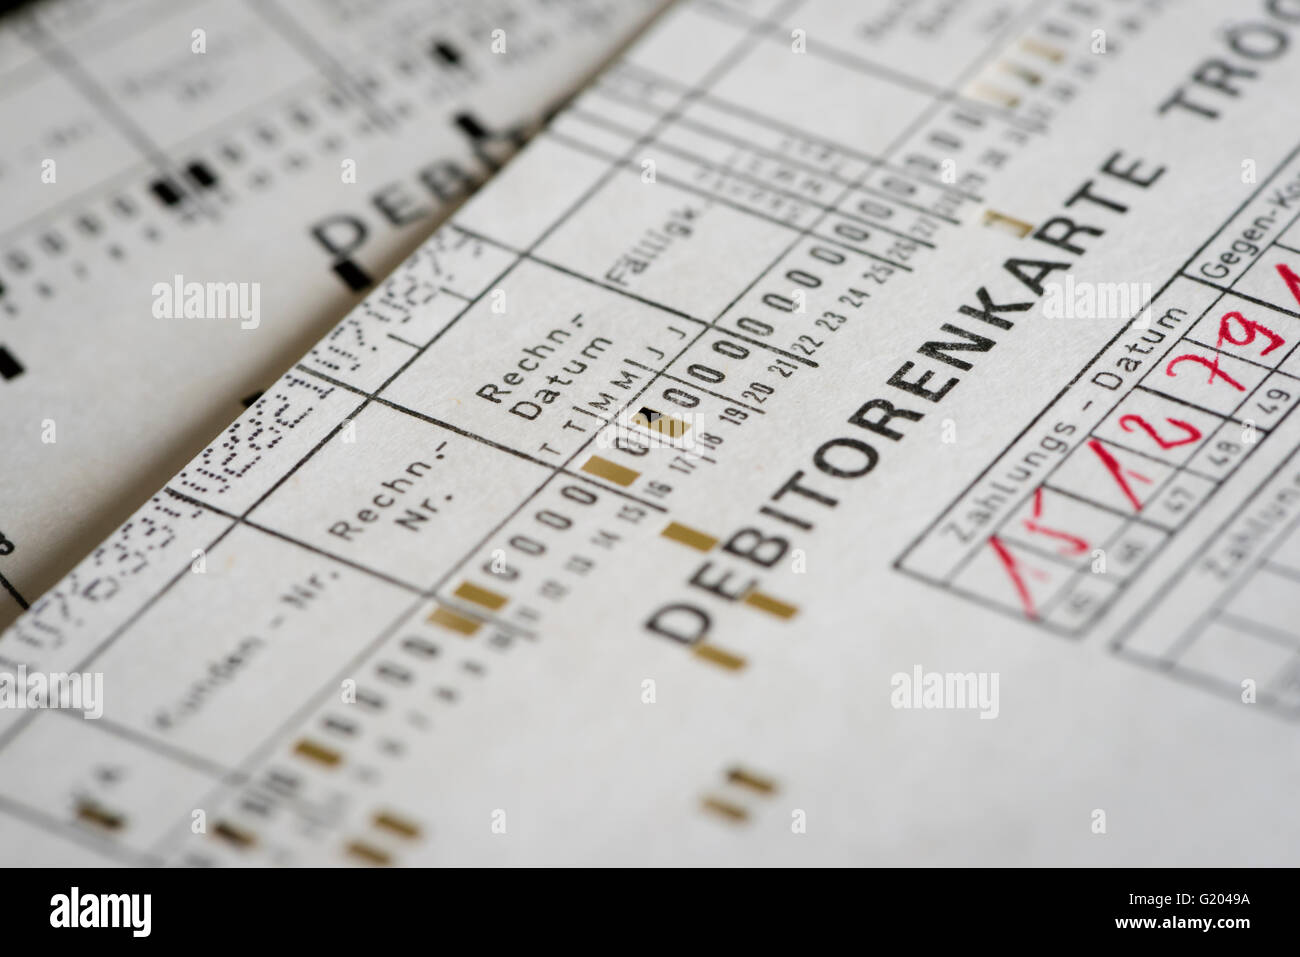 Computer punch cards used for an early computerized accounting system (running on a historic mainframe computer, - Stock Image